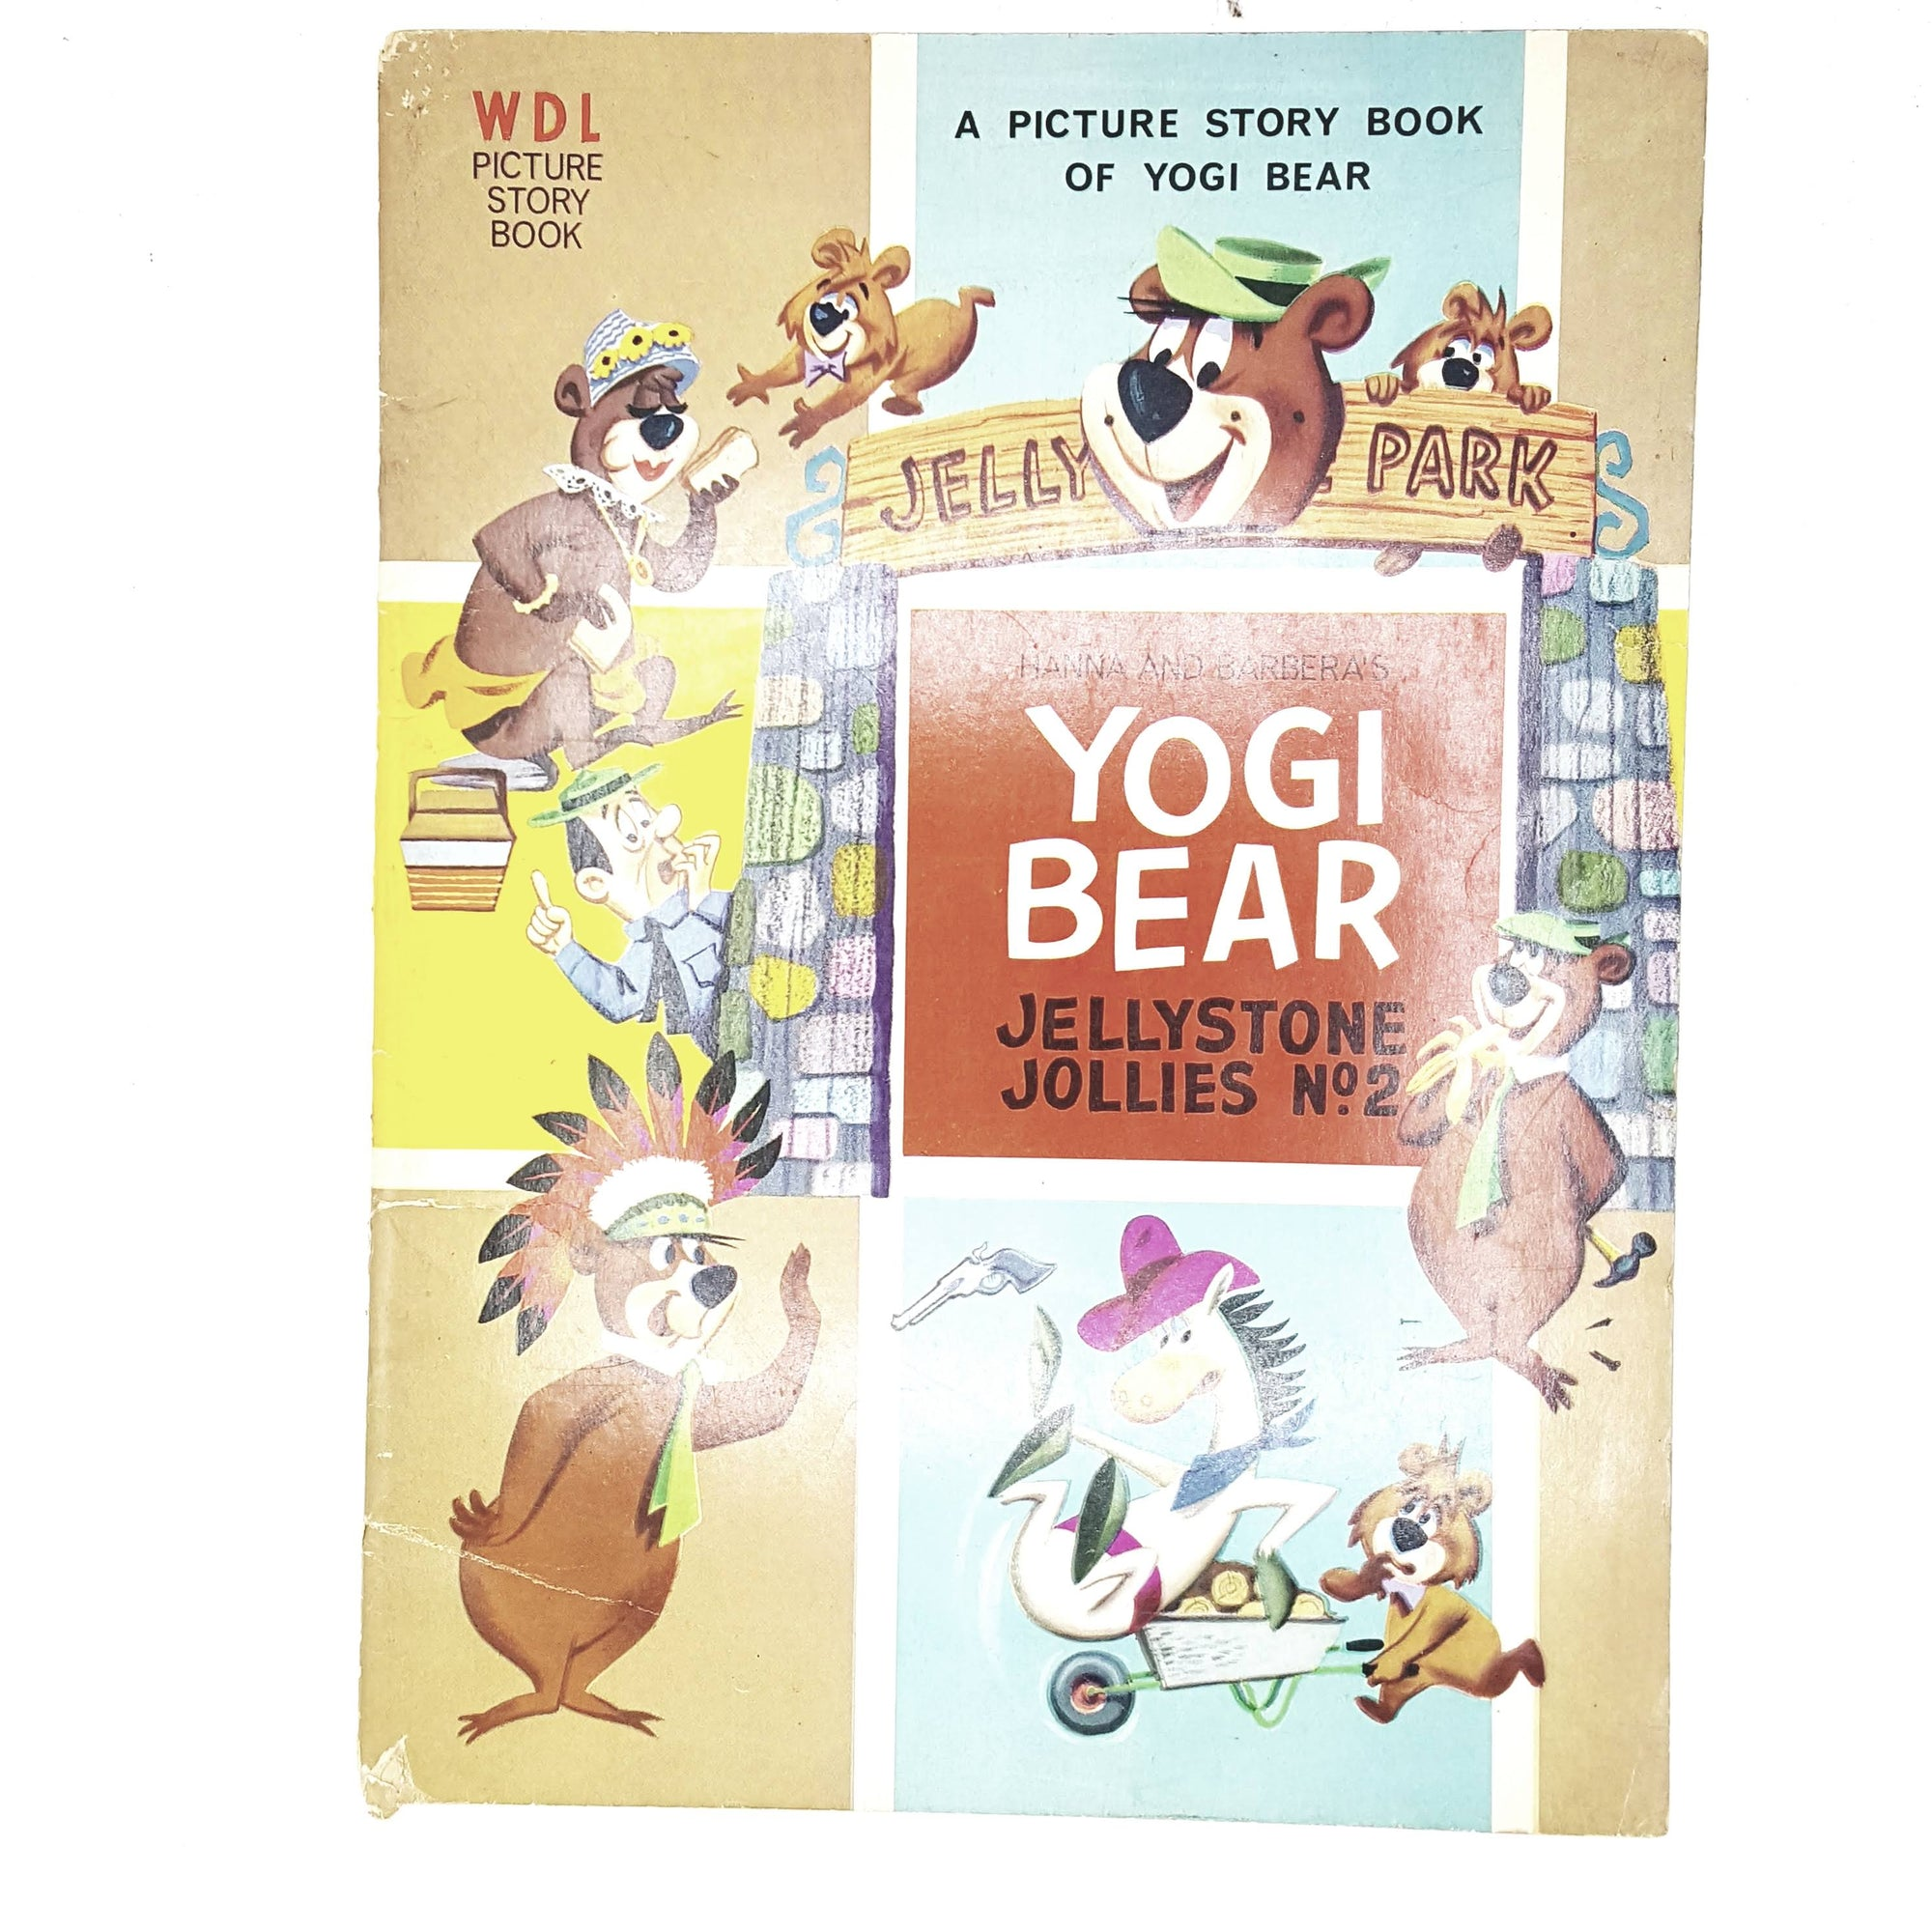 vintage-comic-yogi-bear-jellystone-jollies-no.-2-country-house-library